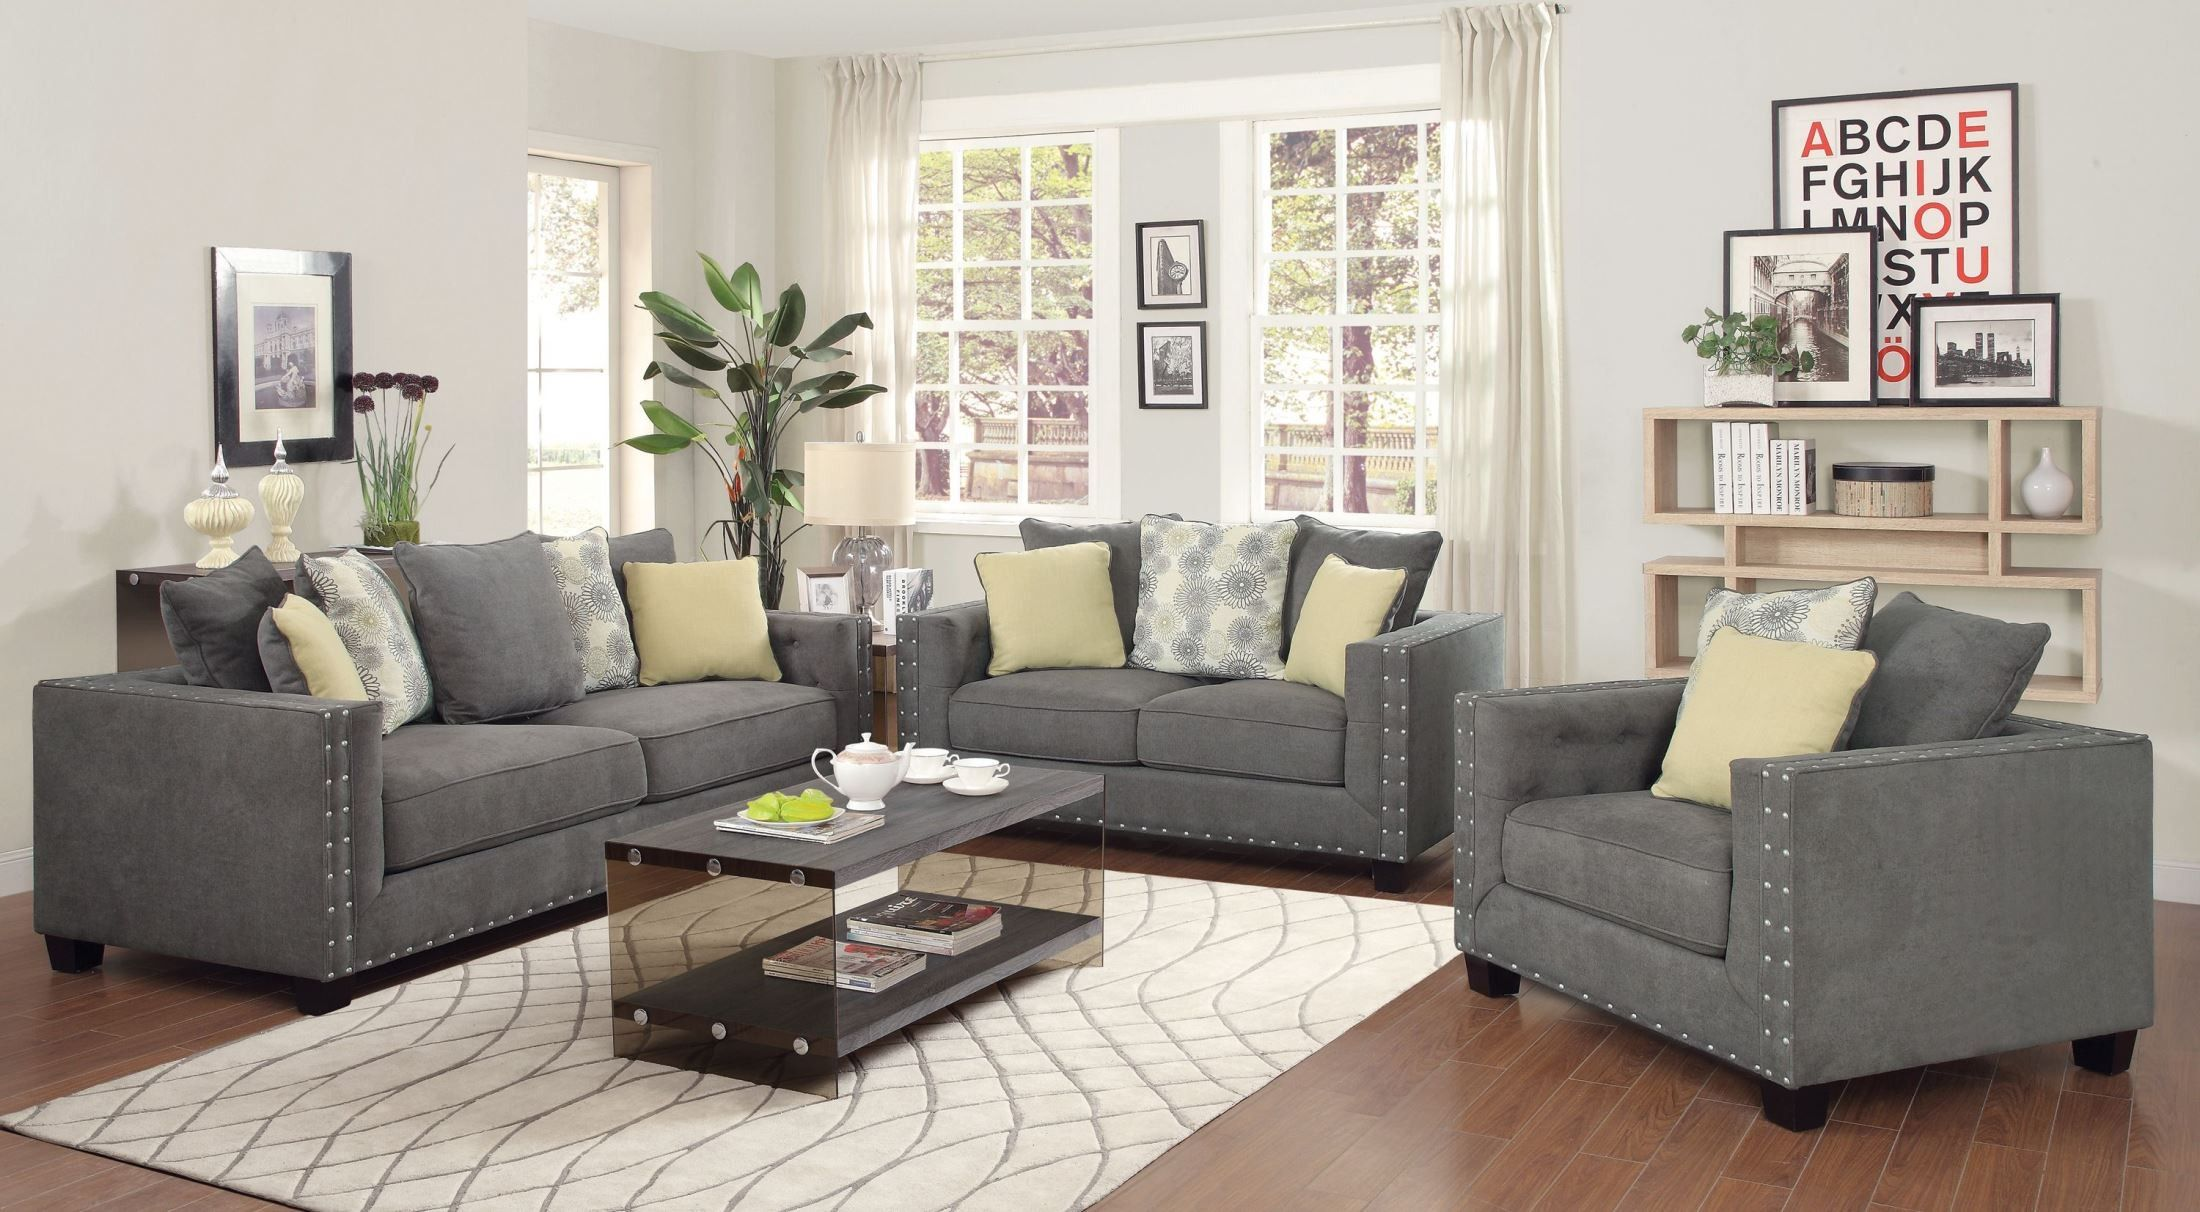 Exceptionnel Kelvington Sofa Set Collection # Charcoal Sofa # Coaster 501421 # Living  Room Sofa Set